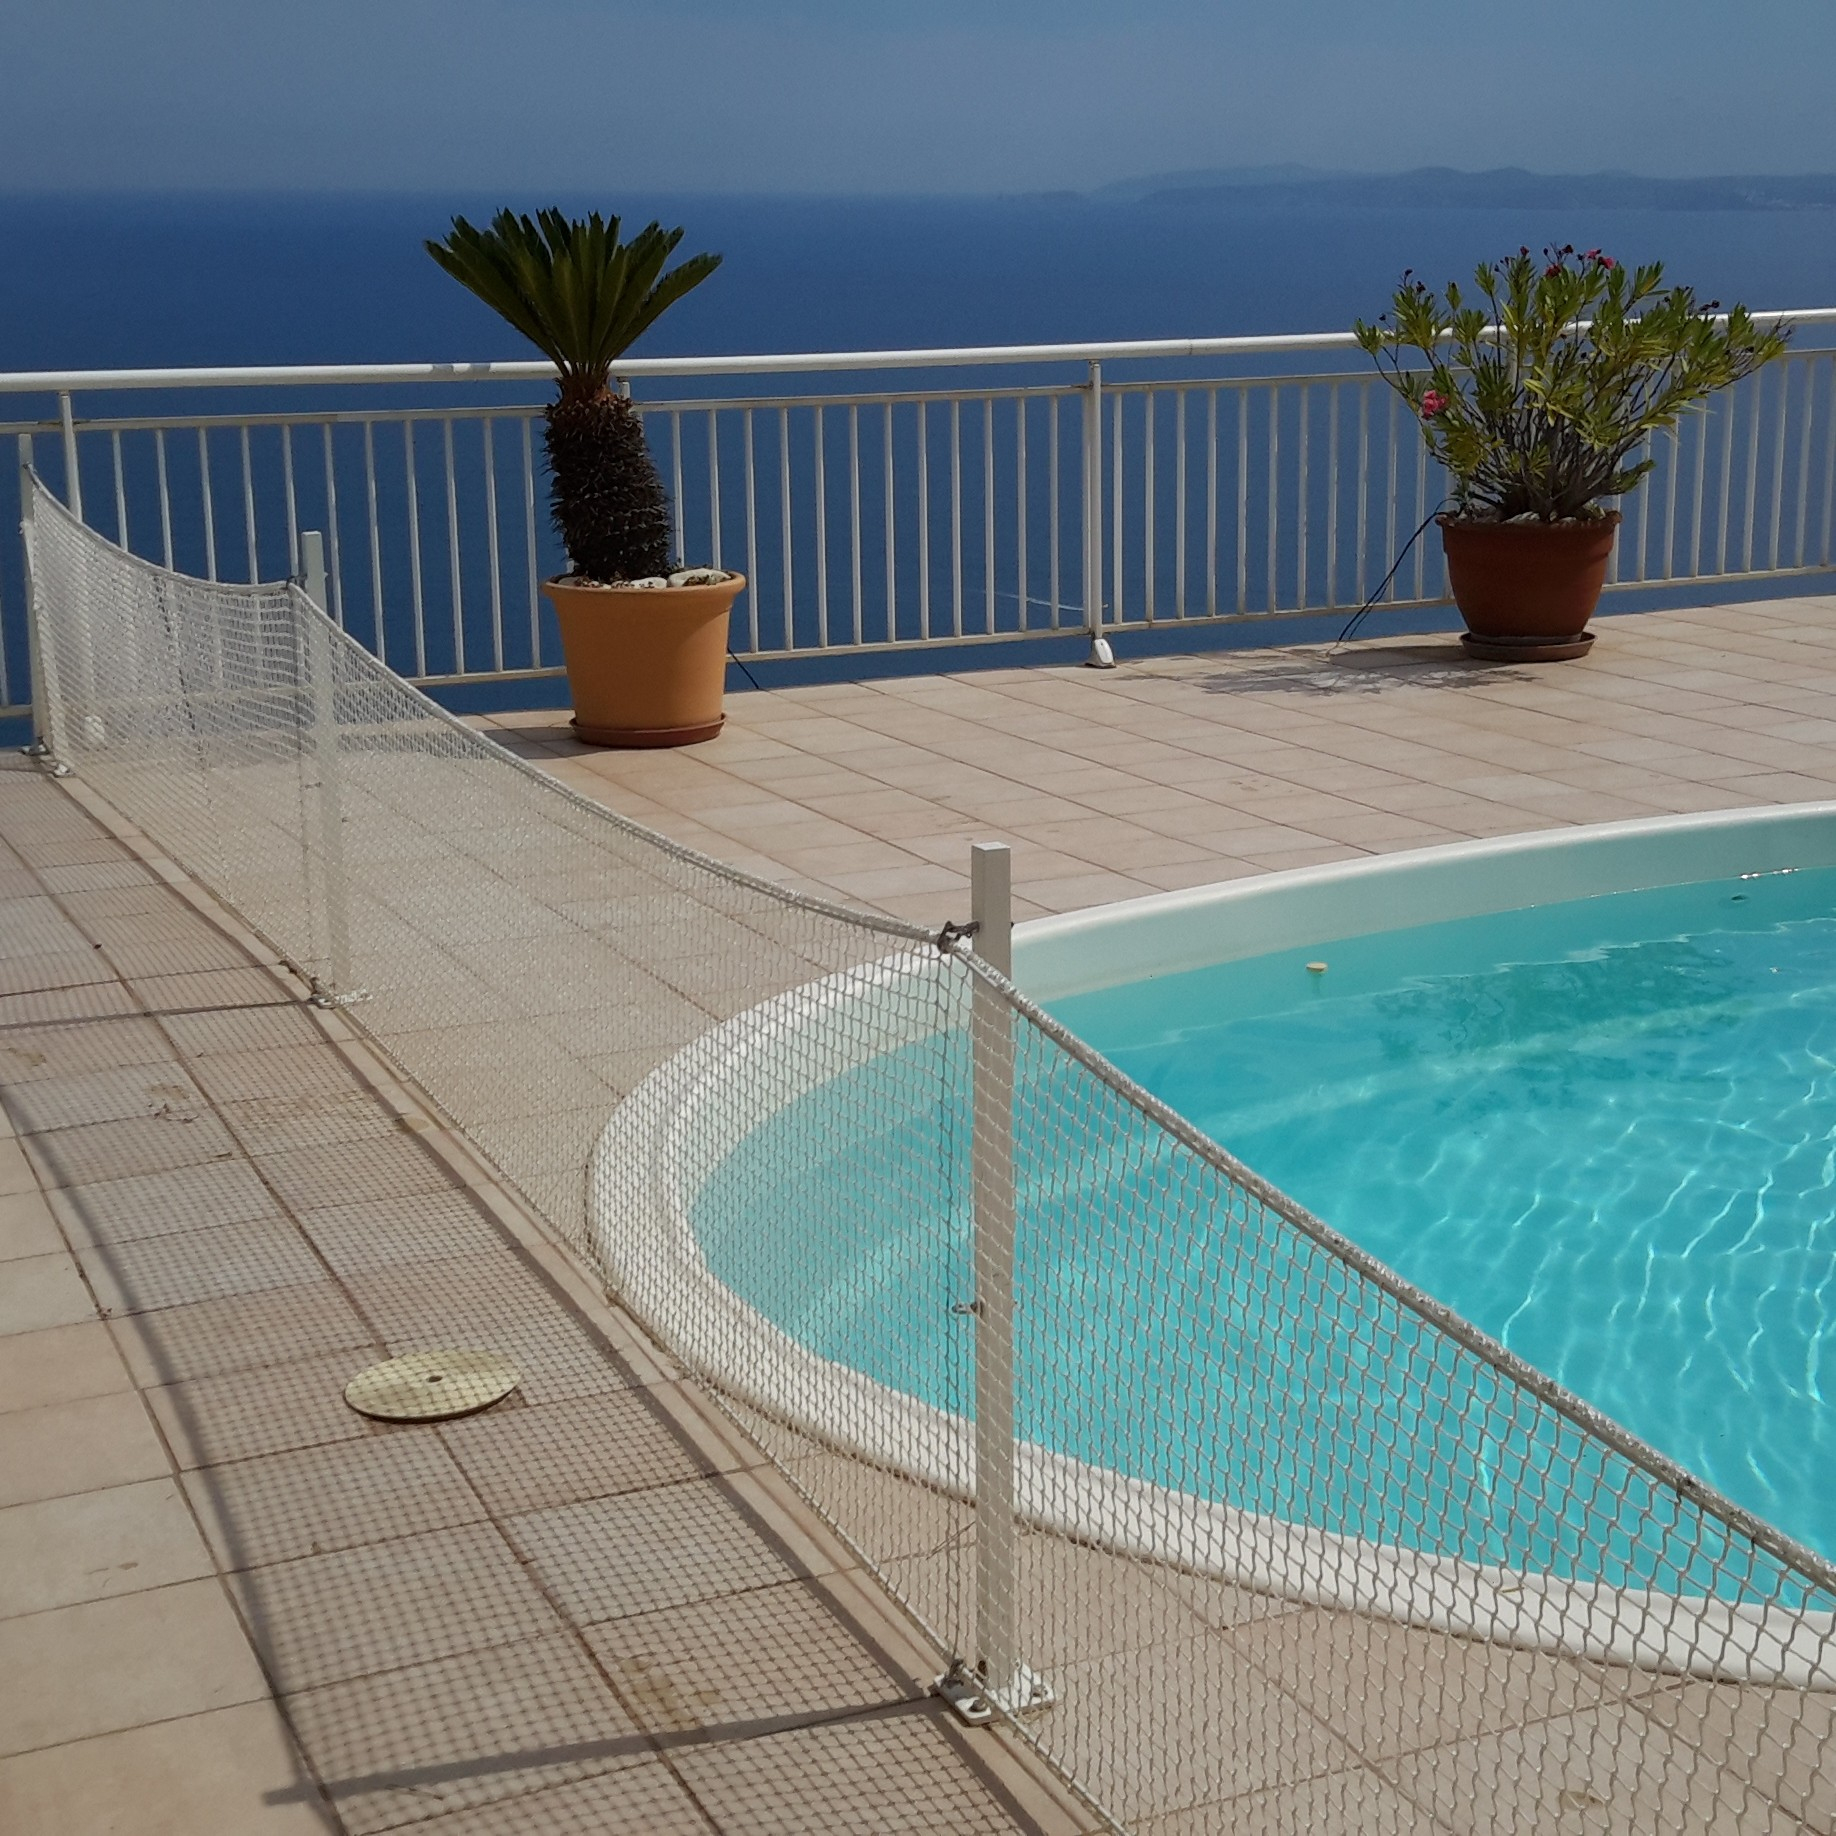 Pourtour De Piscine, Filet Protection Piscine, Vente En Ligne concernant Filet Protection Piscine